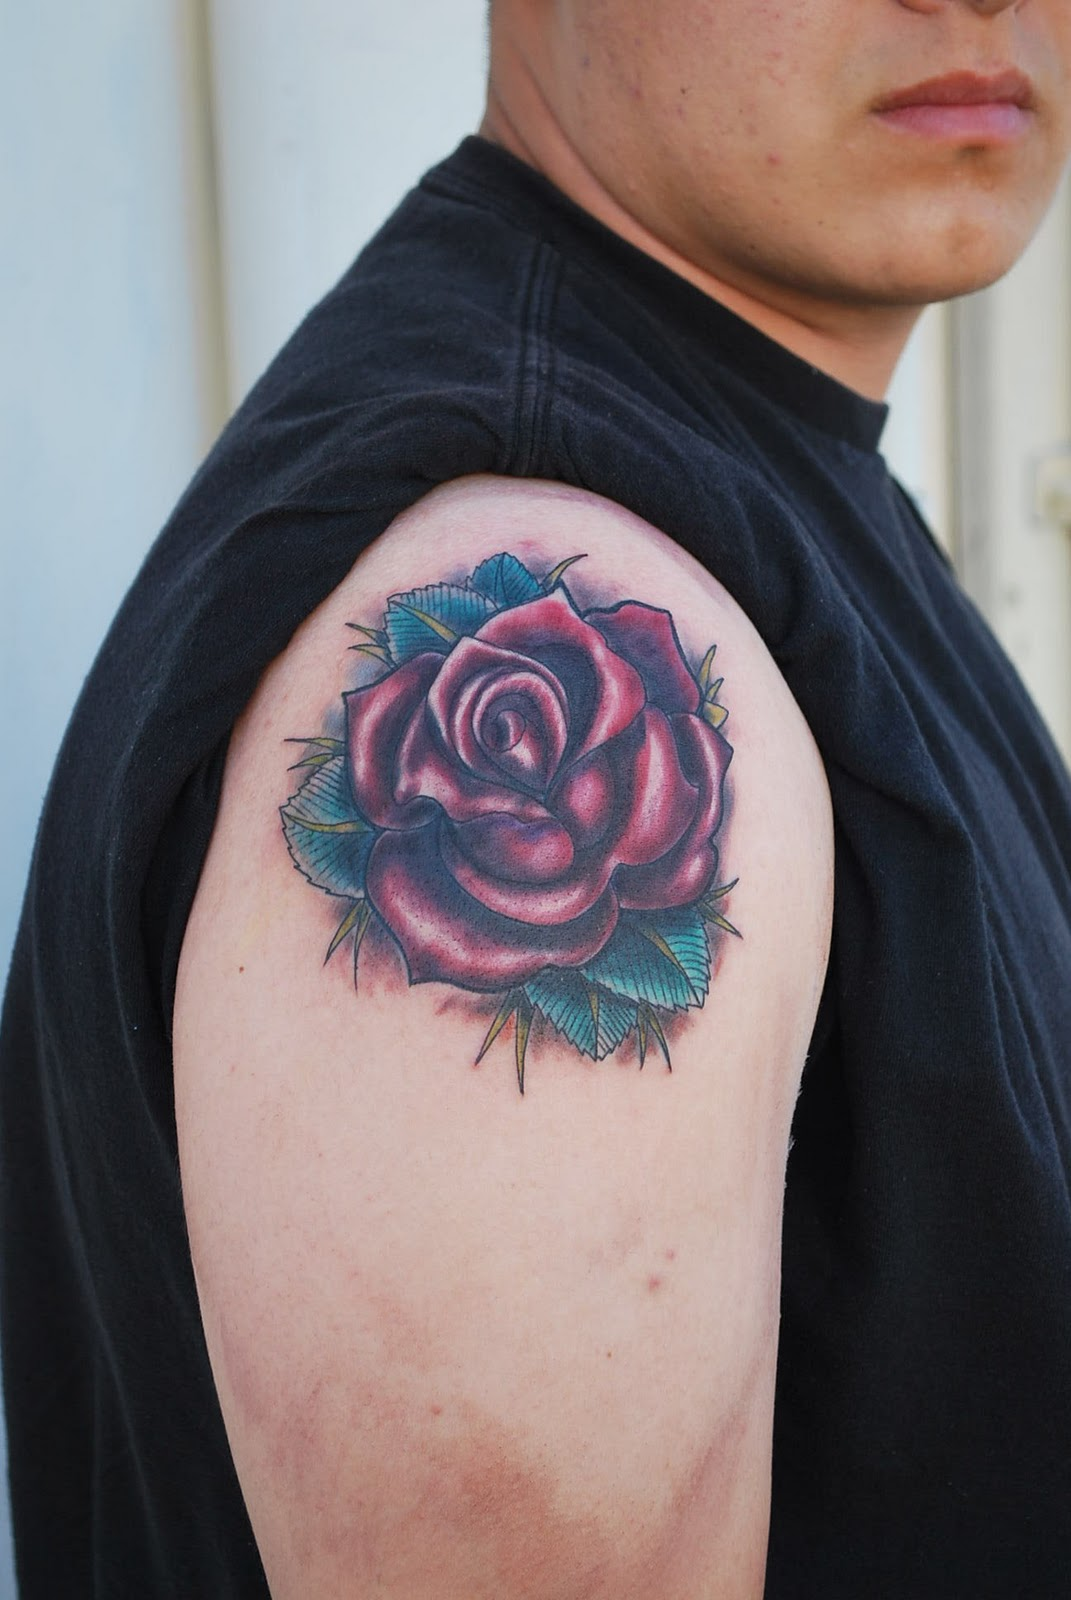 Rose Tattoos on Shoulder Tattoos For Women